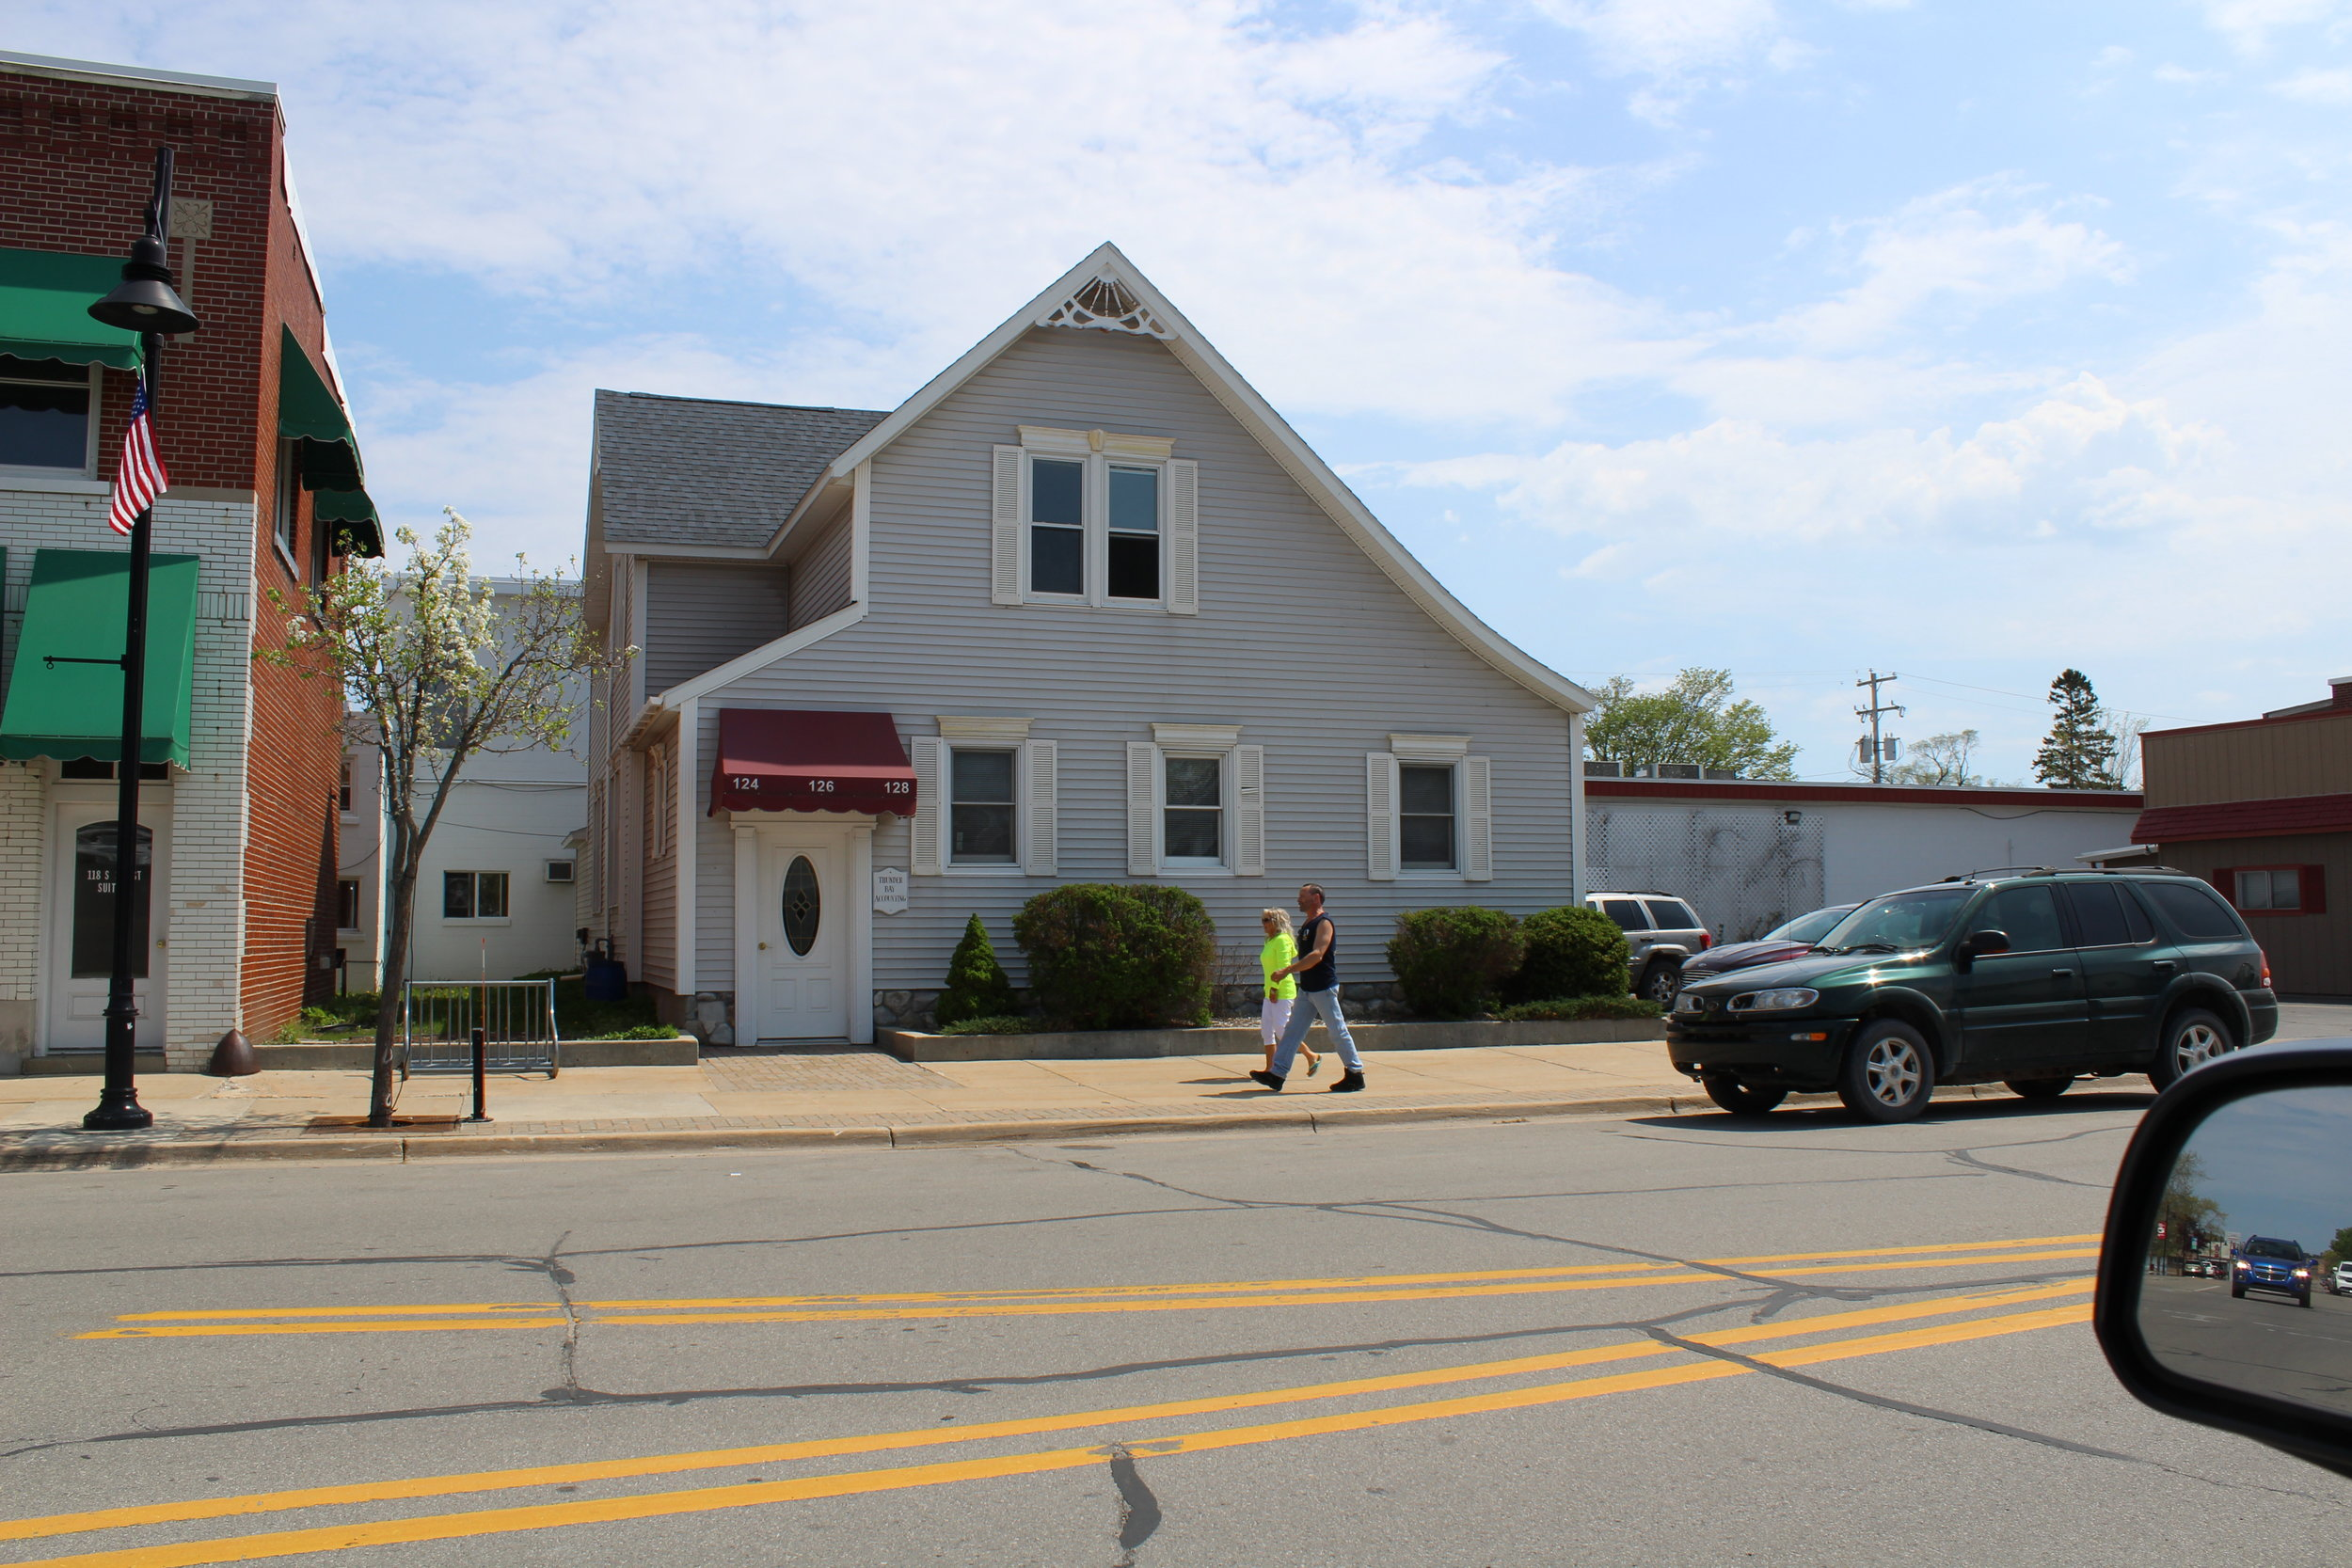 Thunder Bay Accounting - 126 South Third StreetRogers City, MI 49779989-734-3501